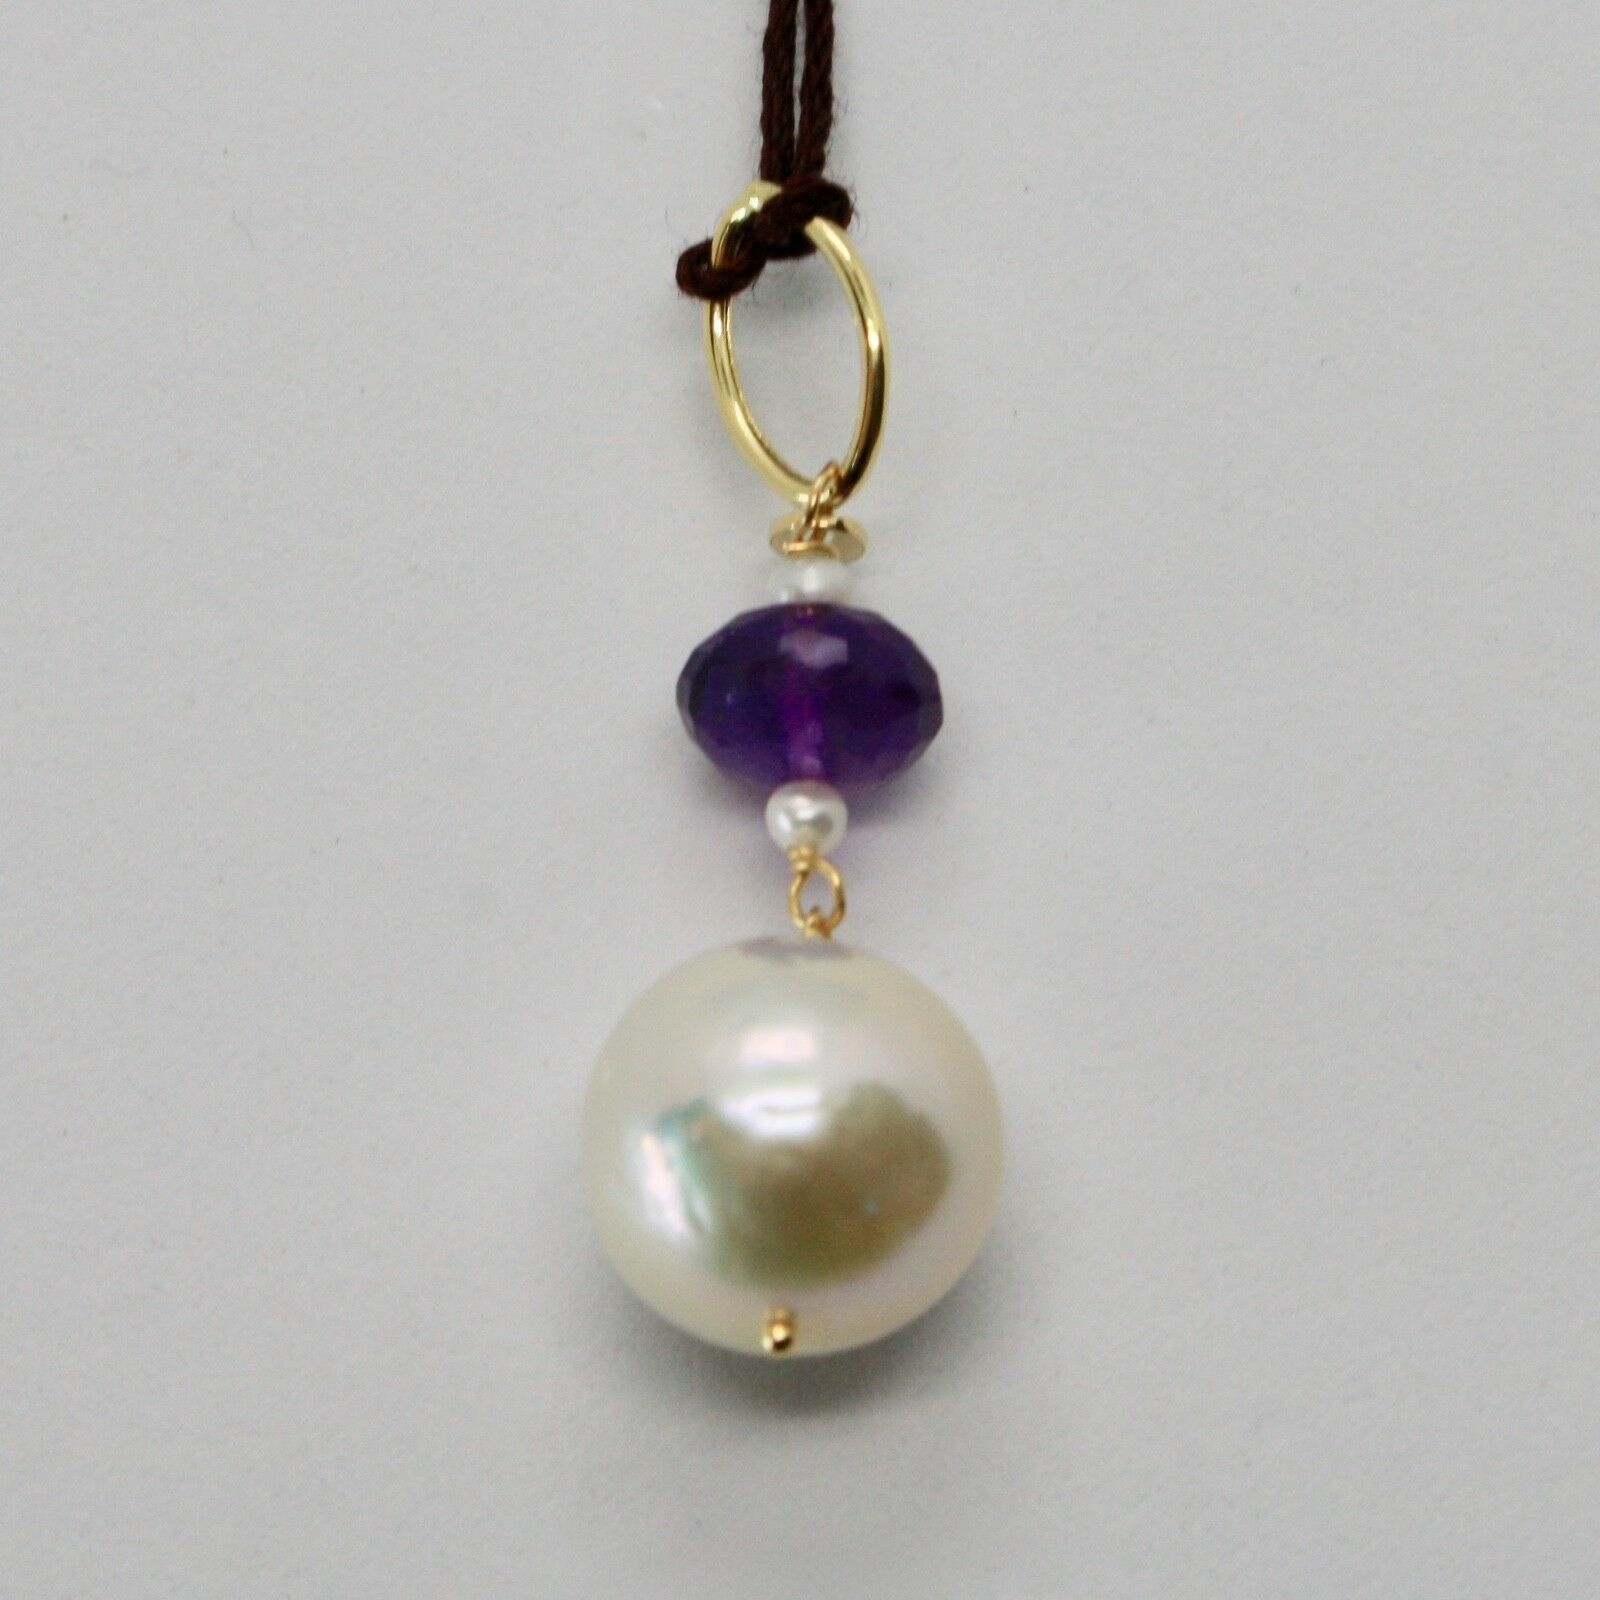 Charm 18k 750 Yellow Gold with White Pearl Freshwater and violet amethyst